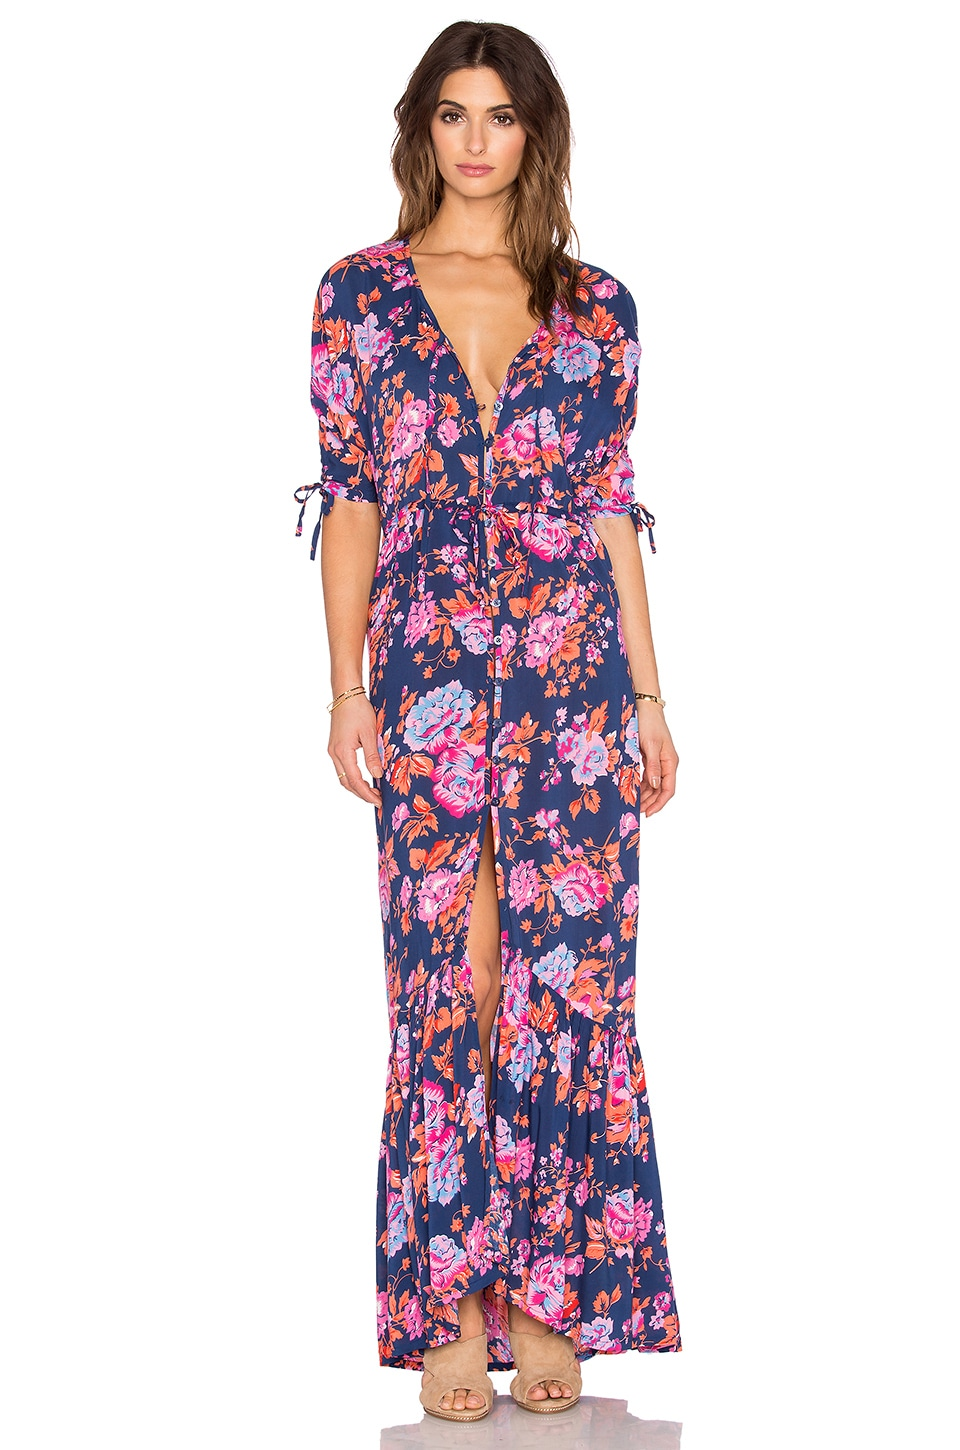 You authorize Impressions Online Boutique to retain your payment information. You agree to take receipt of the items in a timely manner and postmark (for return) one of the two sizes for the garment(s) of which you were provided a back-up size.